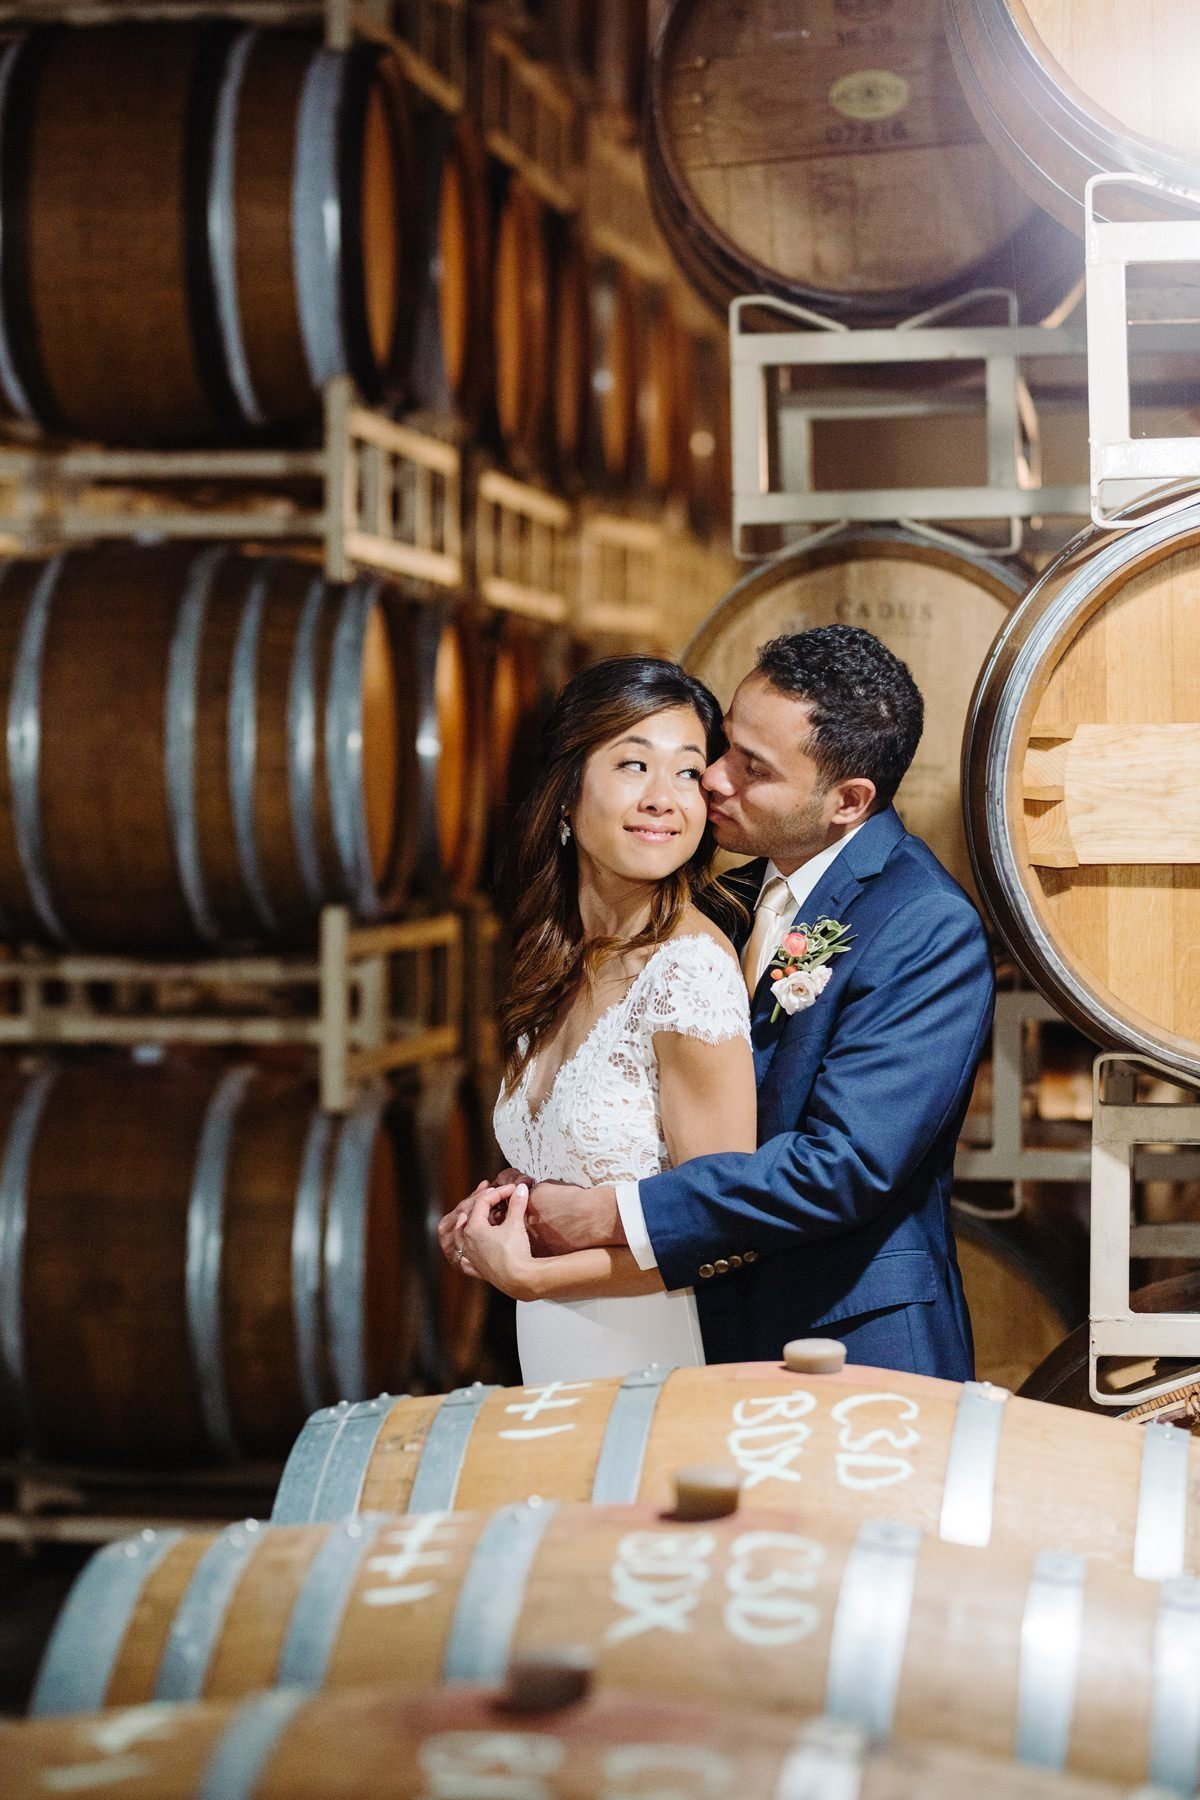 terra-blanca-winery-wedding-washington-seattle-cameron-zegers-0026